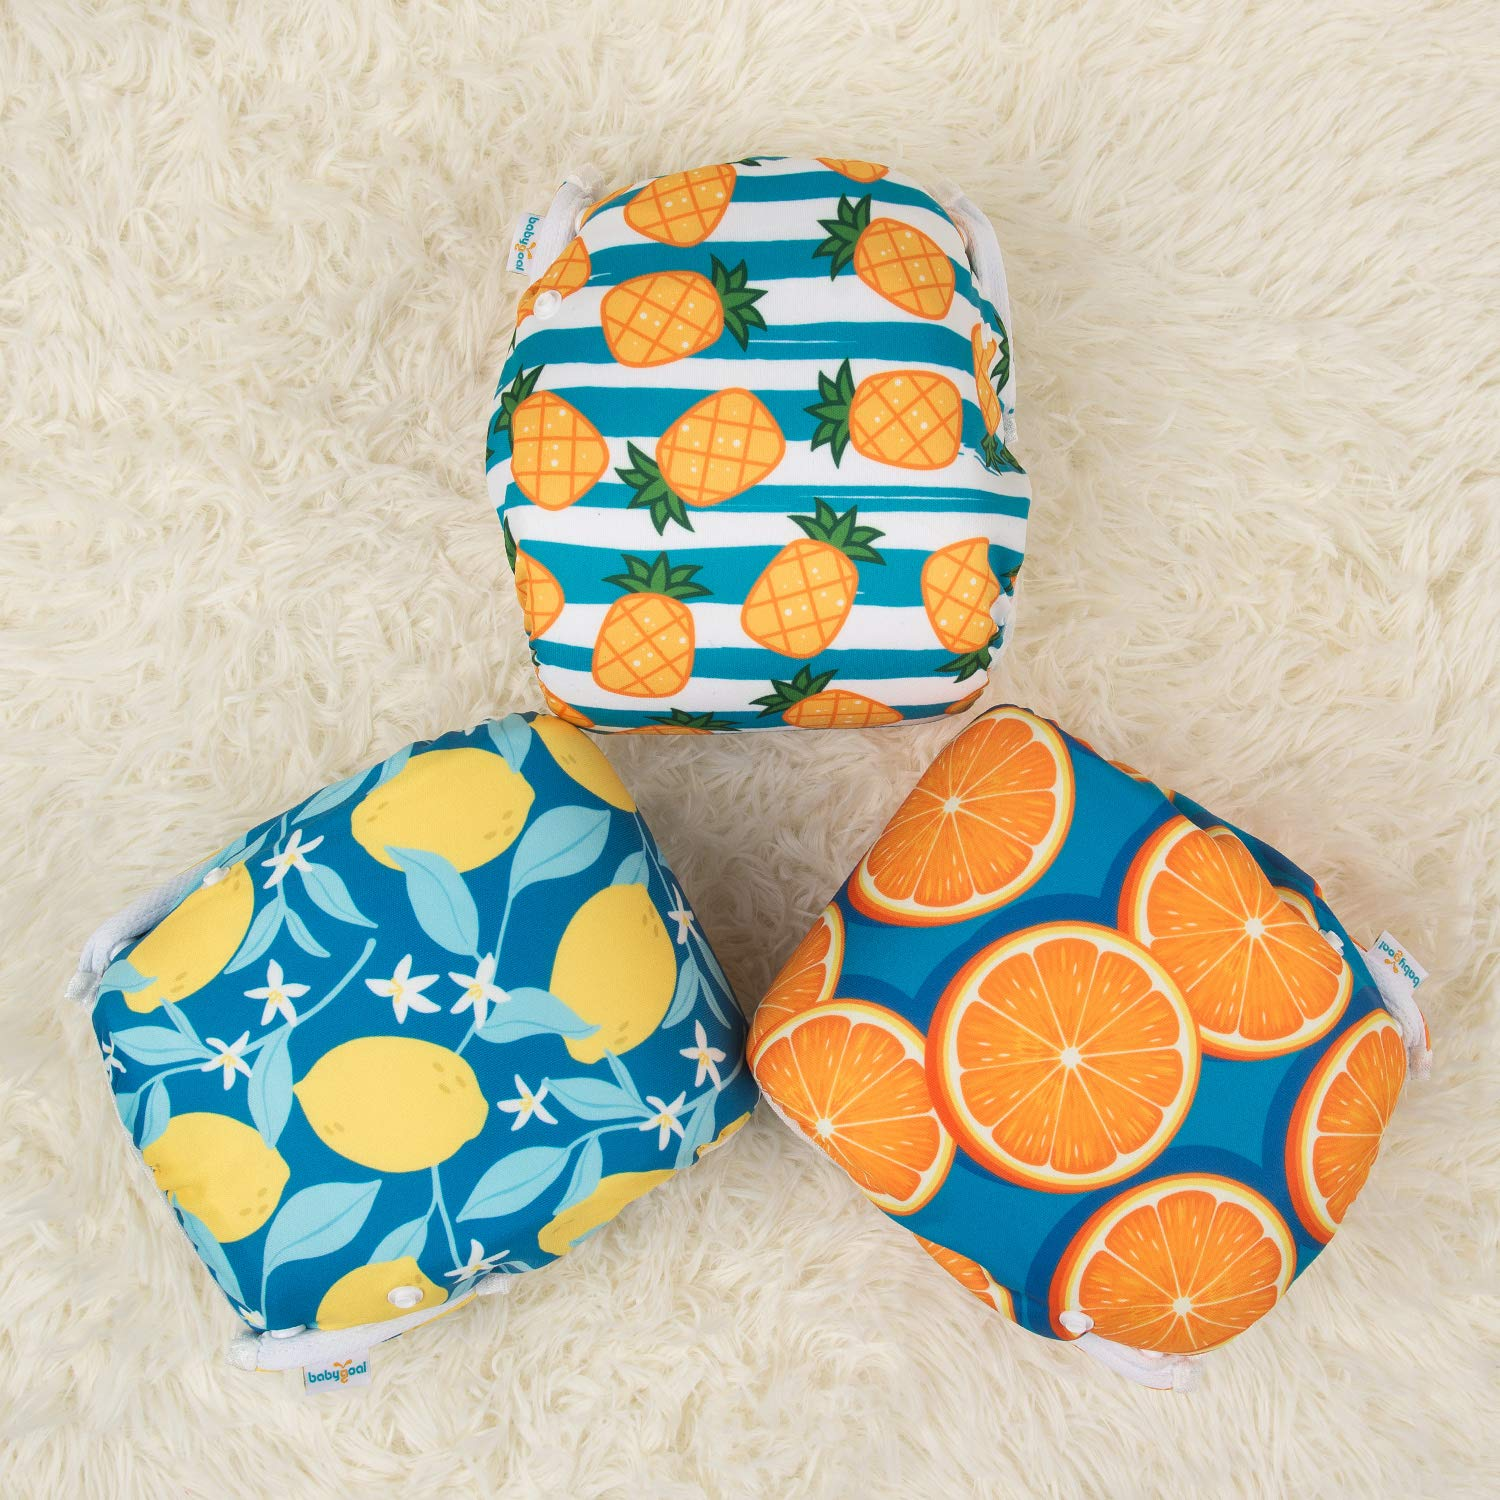 Washable and Adjustable for Babies 0-2 Years Baby Shower Gift /& Swimming Lessons 3SD11 babygoal Baby Reusable Swim Diaper